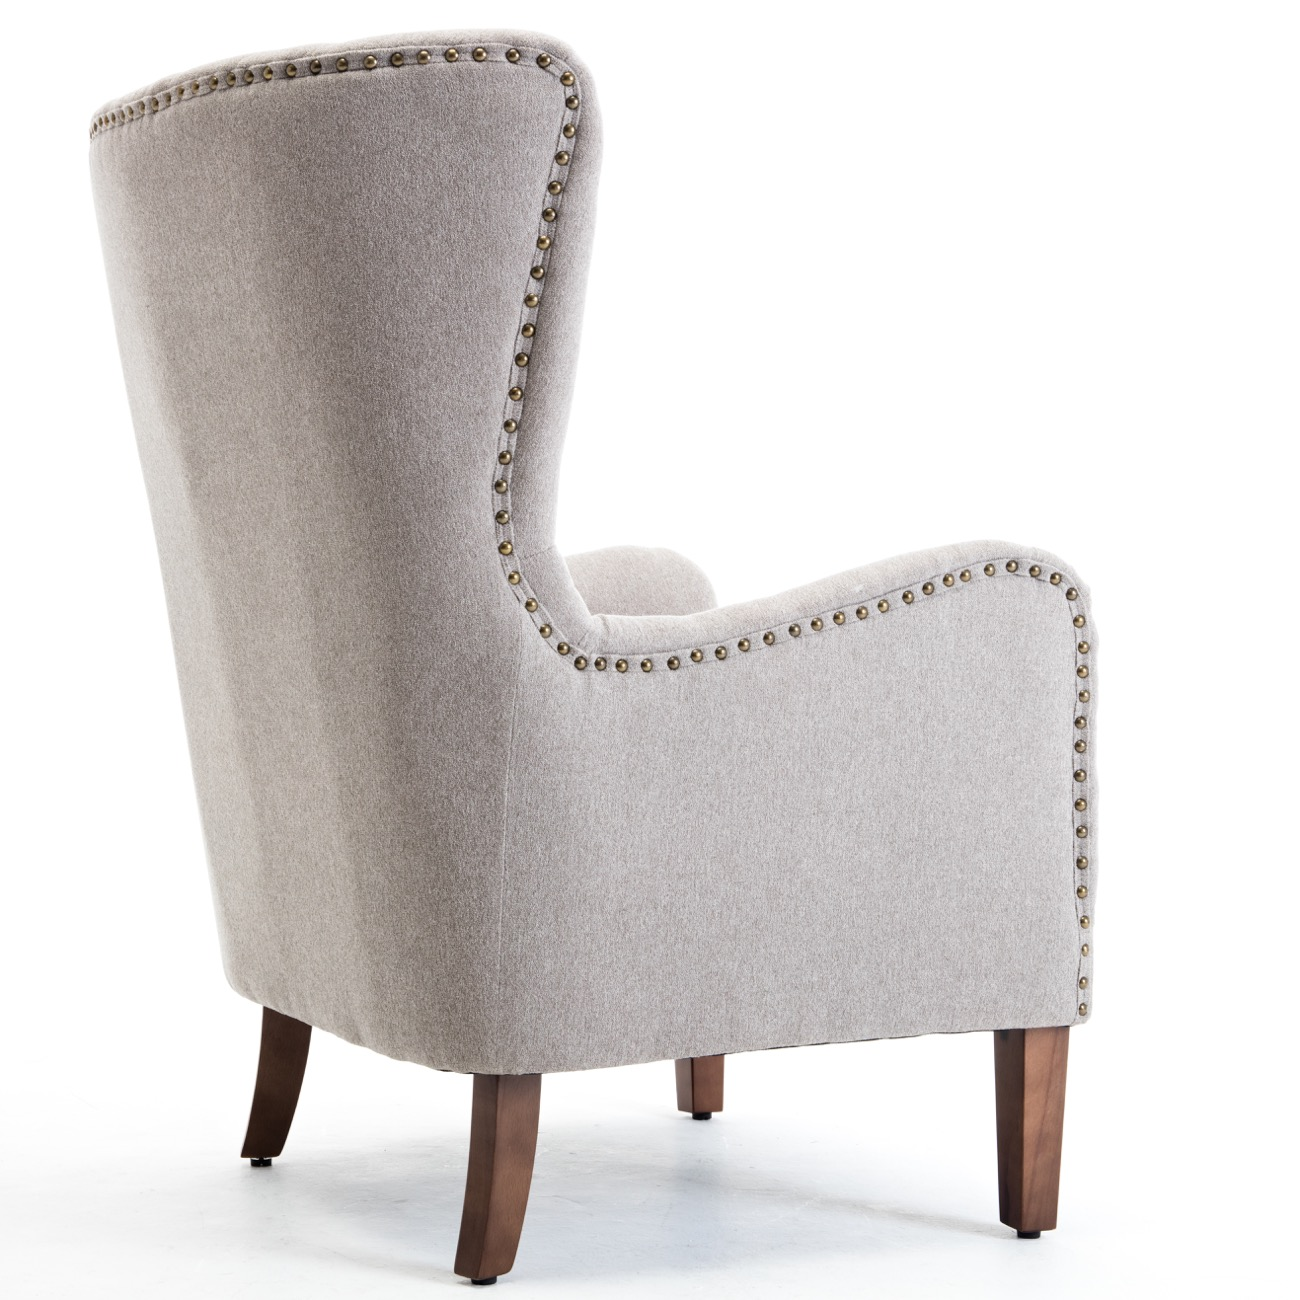 Details About Mid Century Wingback Chair Accent Curved High Back Arm Nail Head Wood Legs Gray